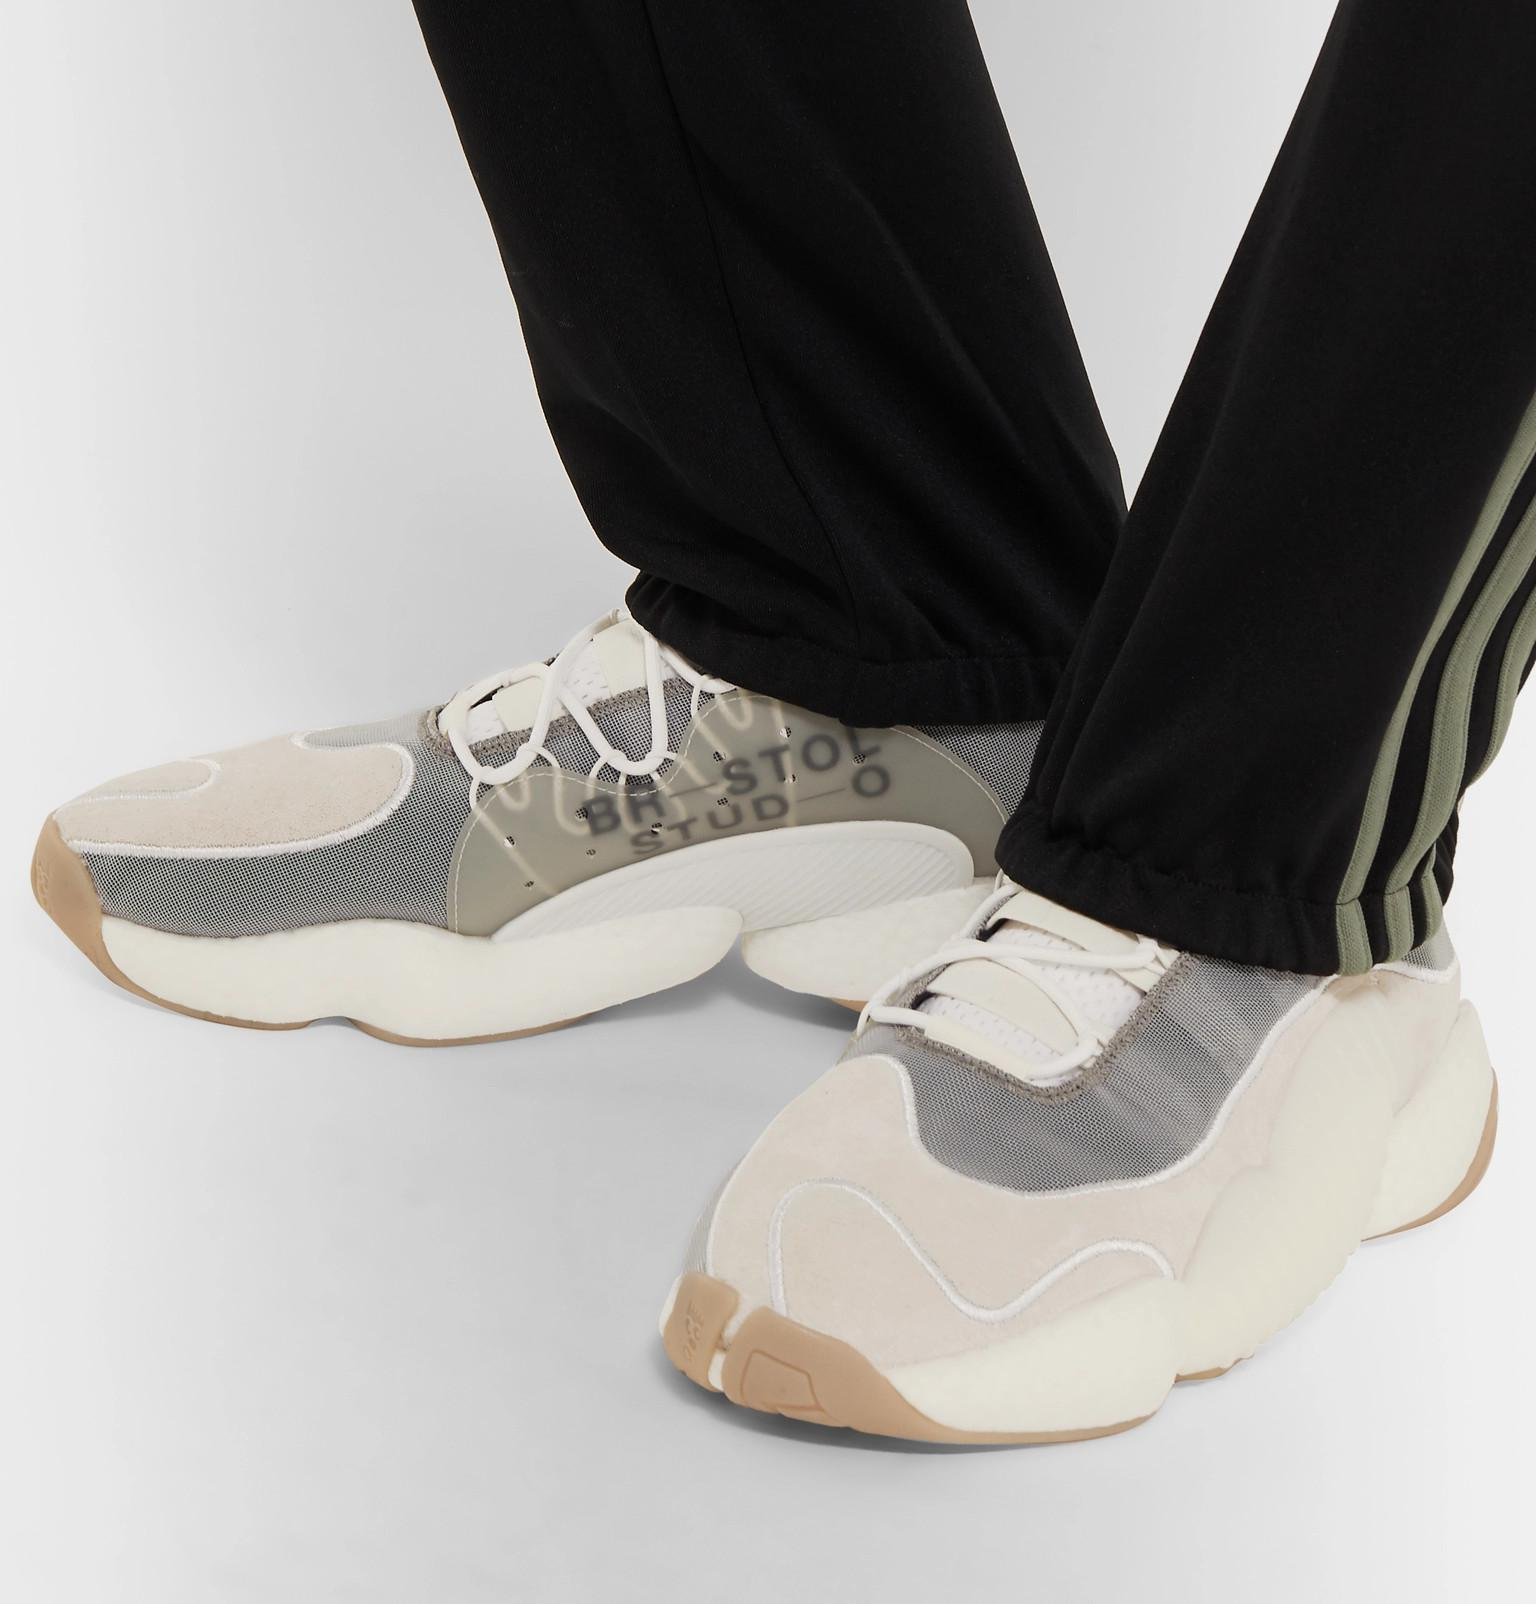 fb9e54bba7c Adidas Originals - White + Bristol Studio Crazy Byw Lvl Ii Suede And Mesh  Sneakers for. View fullscreen